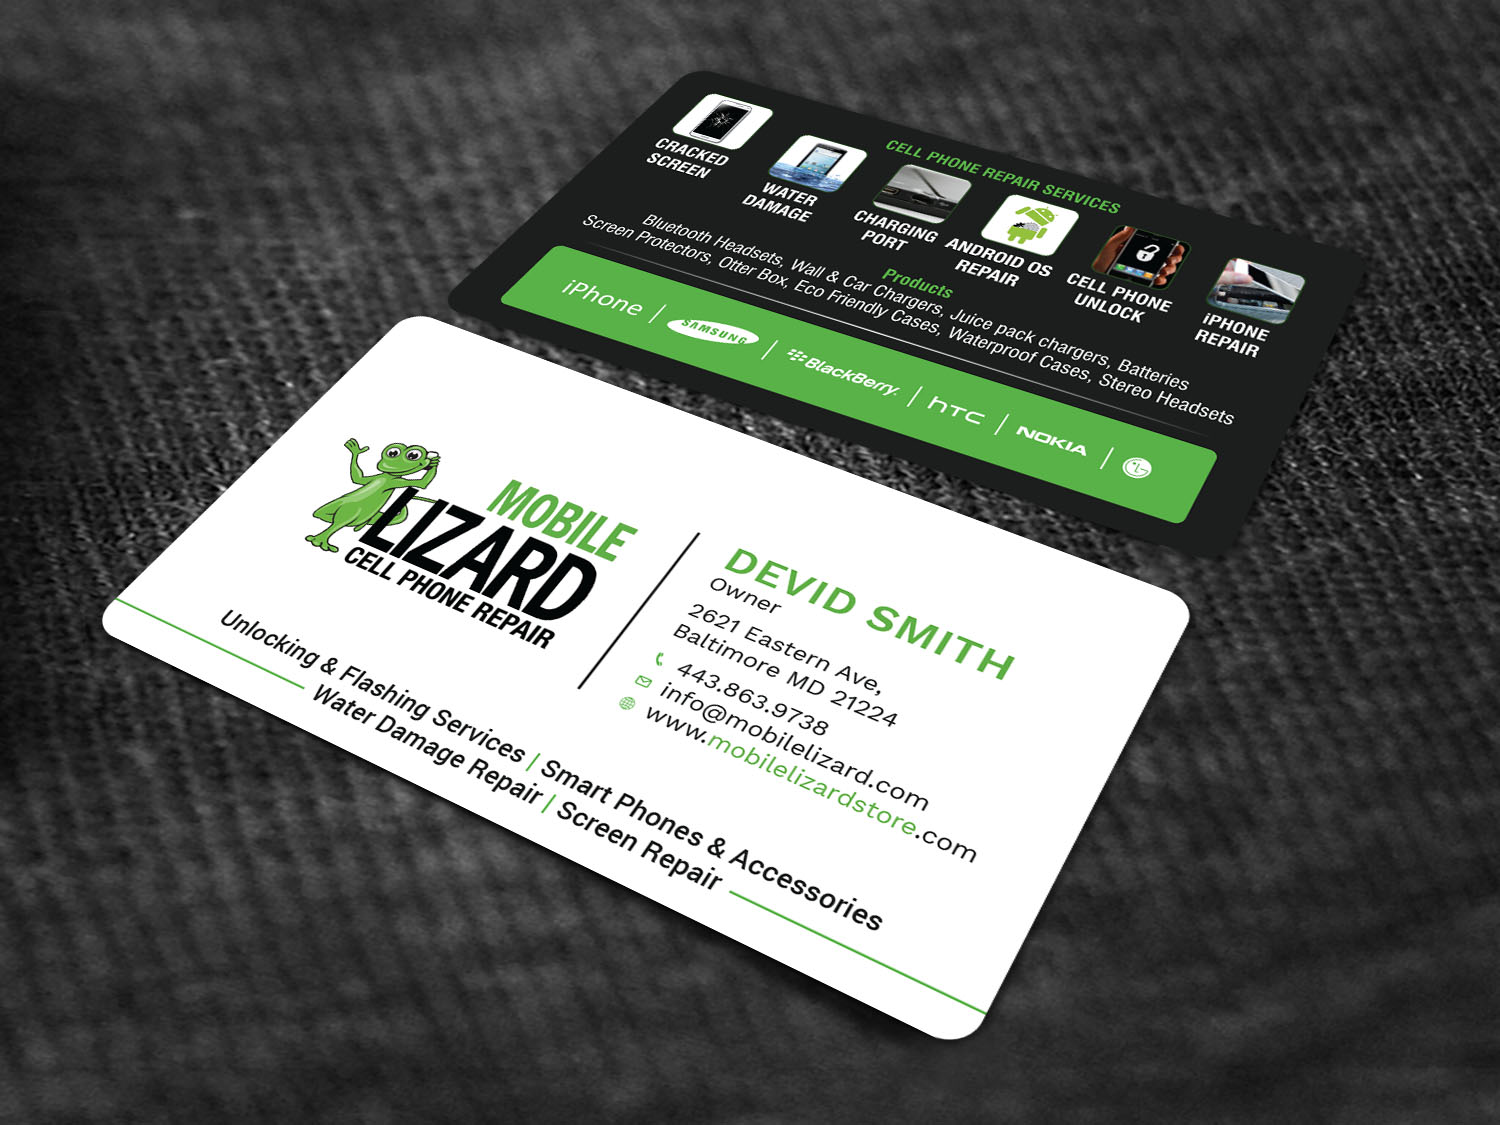 Modern upmarket cell phone business card design for carte blanche business card design by avanger000 for carte blanche communications design 17324097 colourmoves